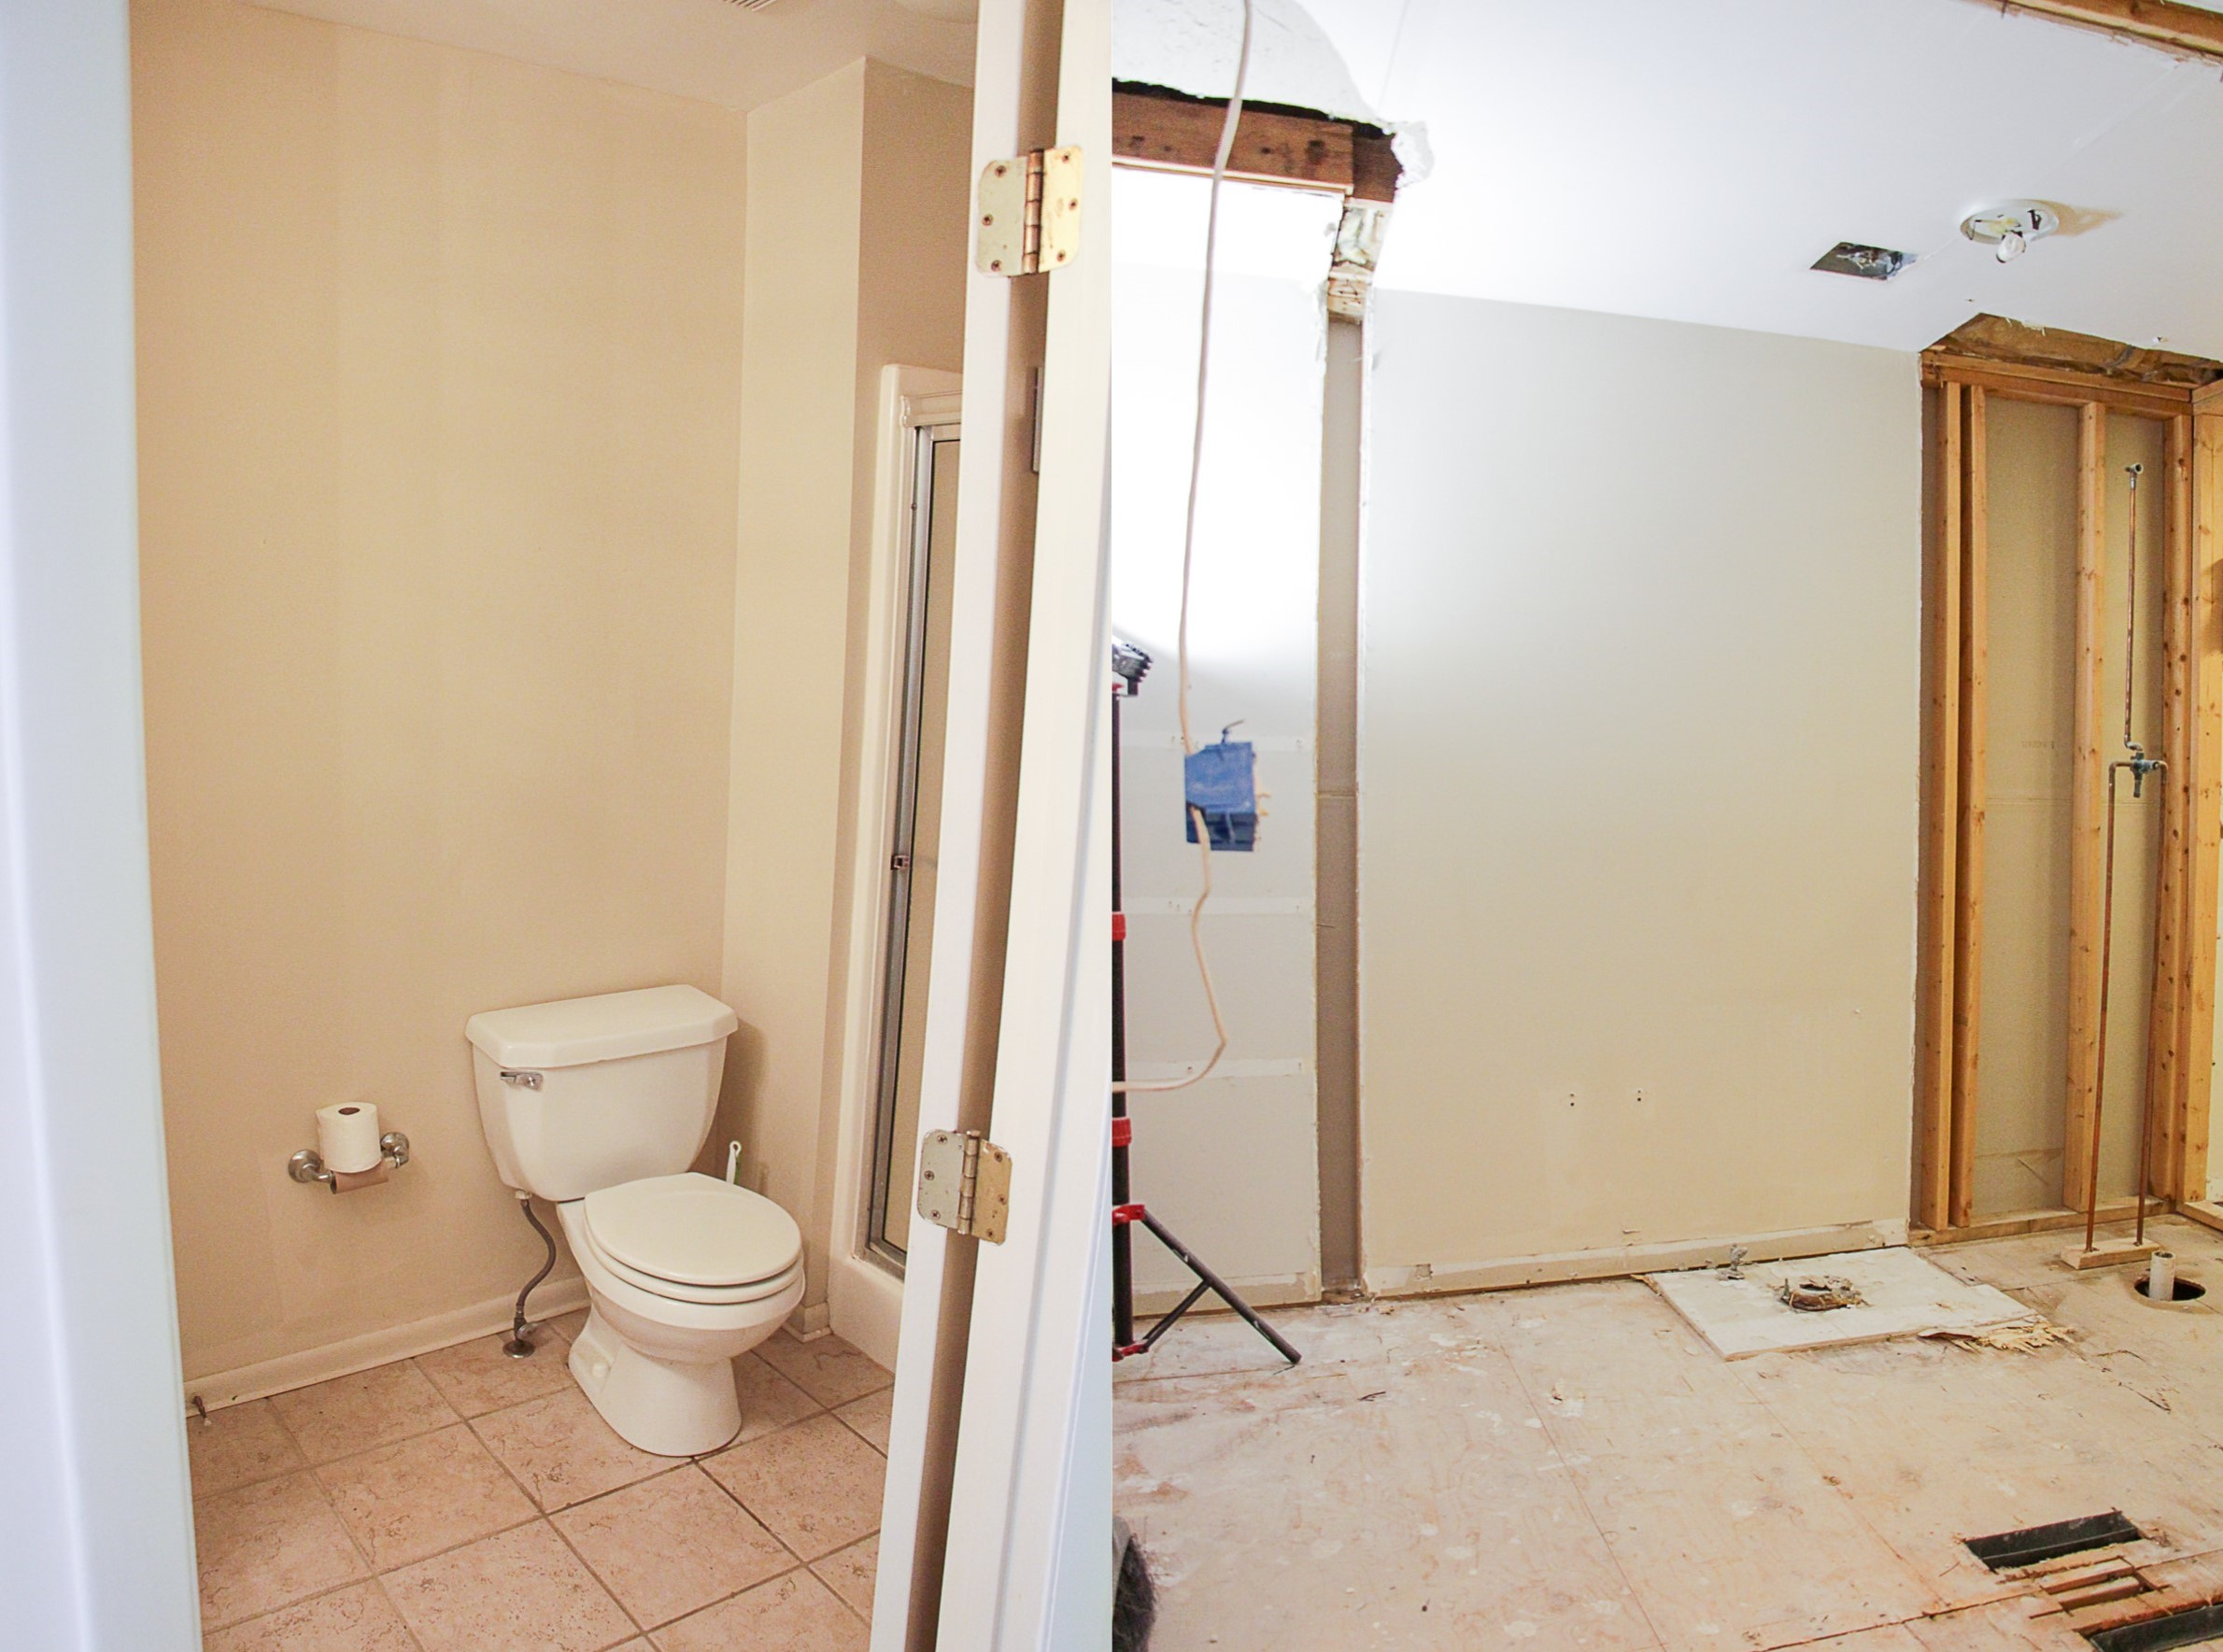 Before & After Demo Day at The Greenspring Home